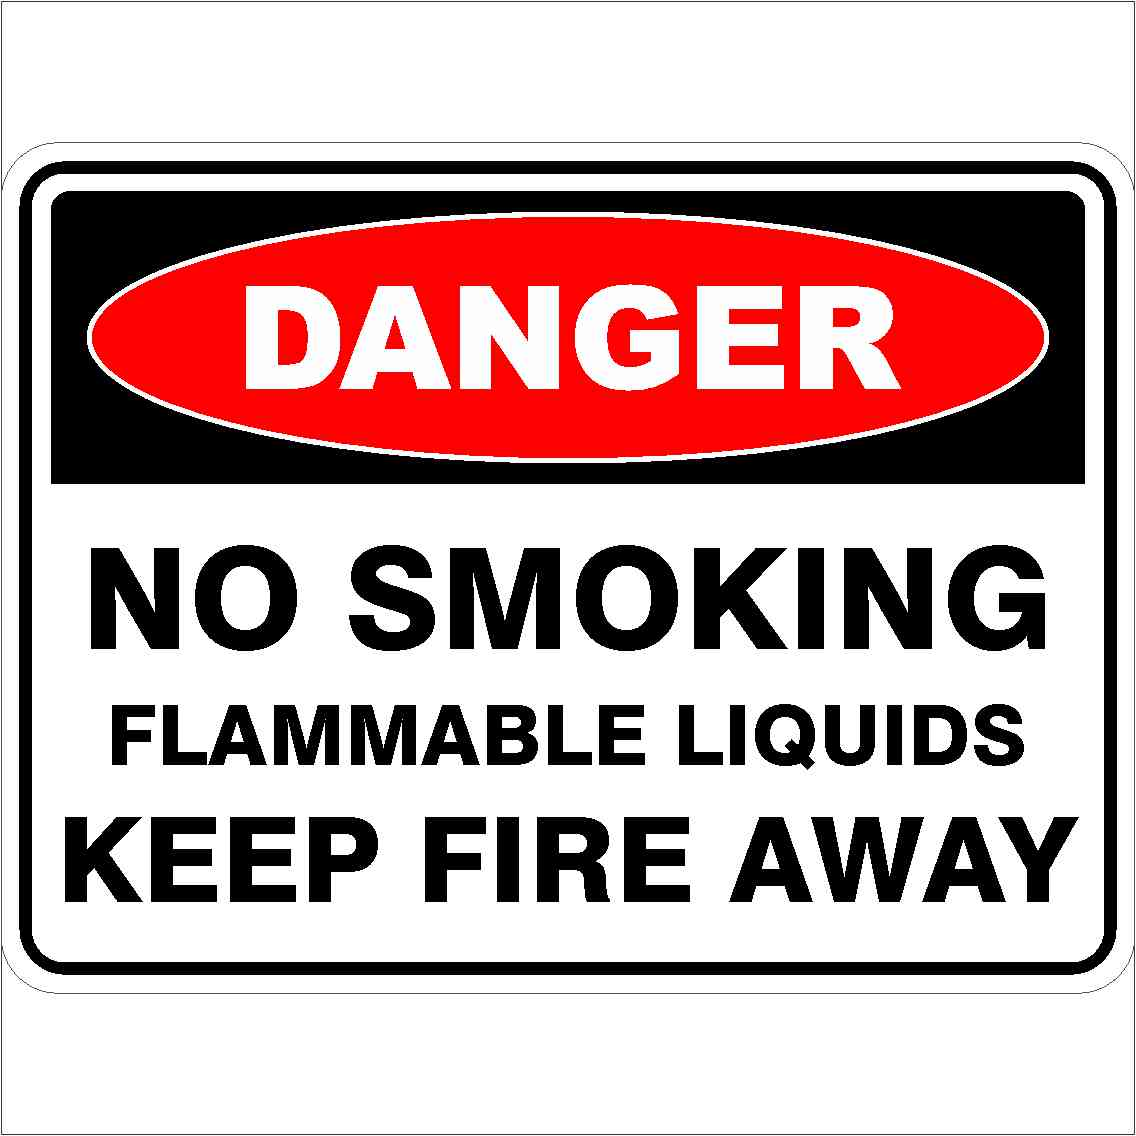 Danger Signs NO SMOKING FLAMMABLE LIQUIDS KEEP FIRE AWAY